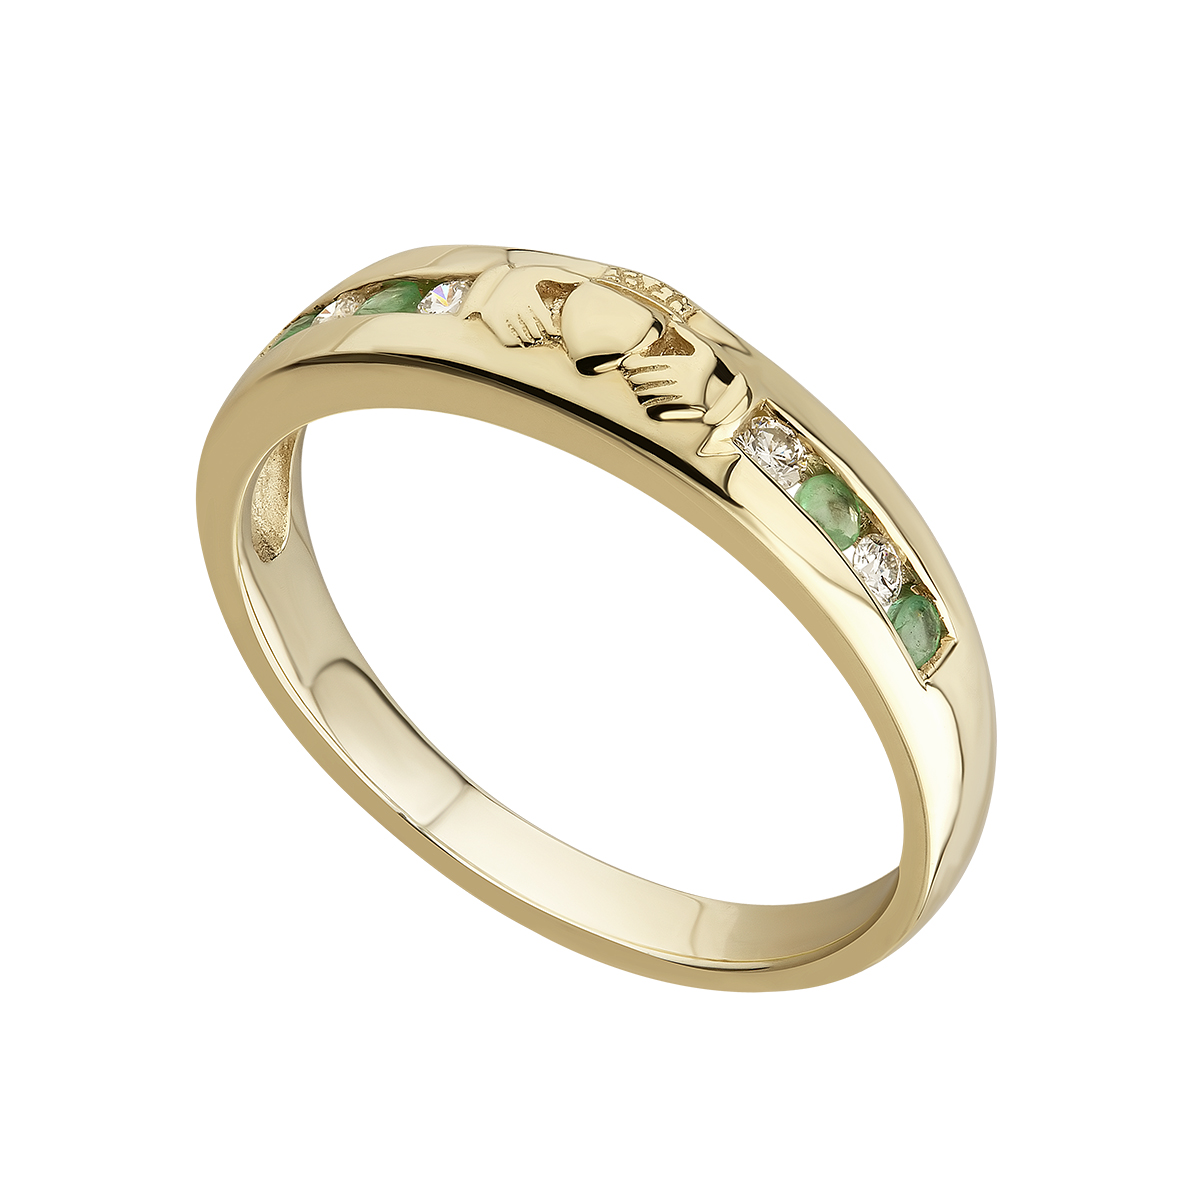 Claddagh Ring - Ladies 14k Gold with Diamonds and Emeralds Claddagh Eternity